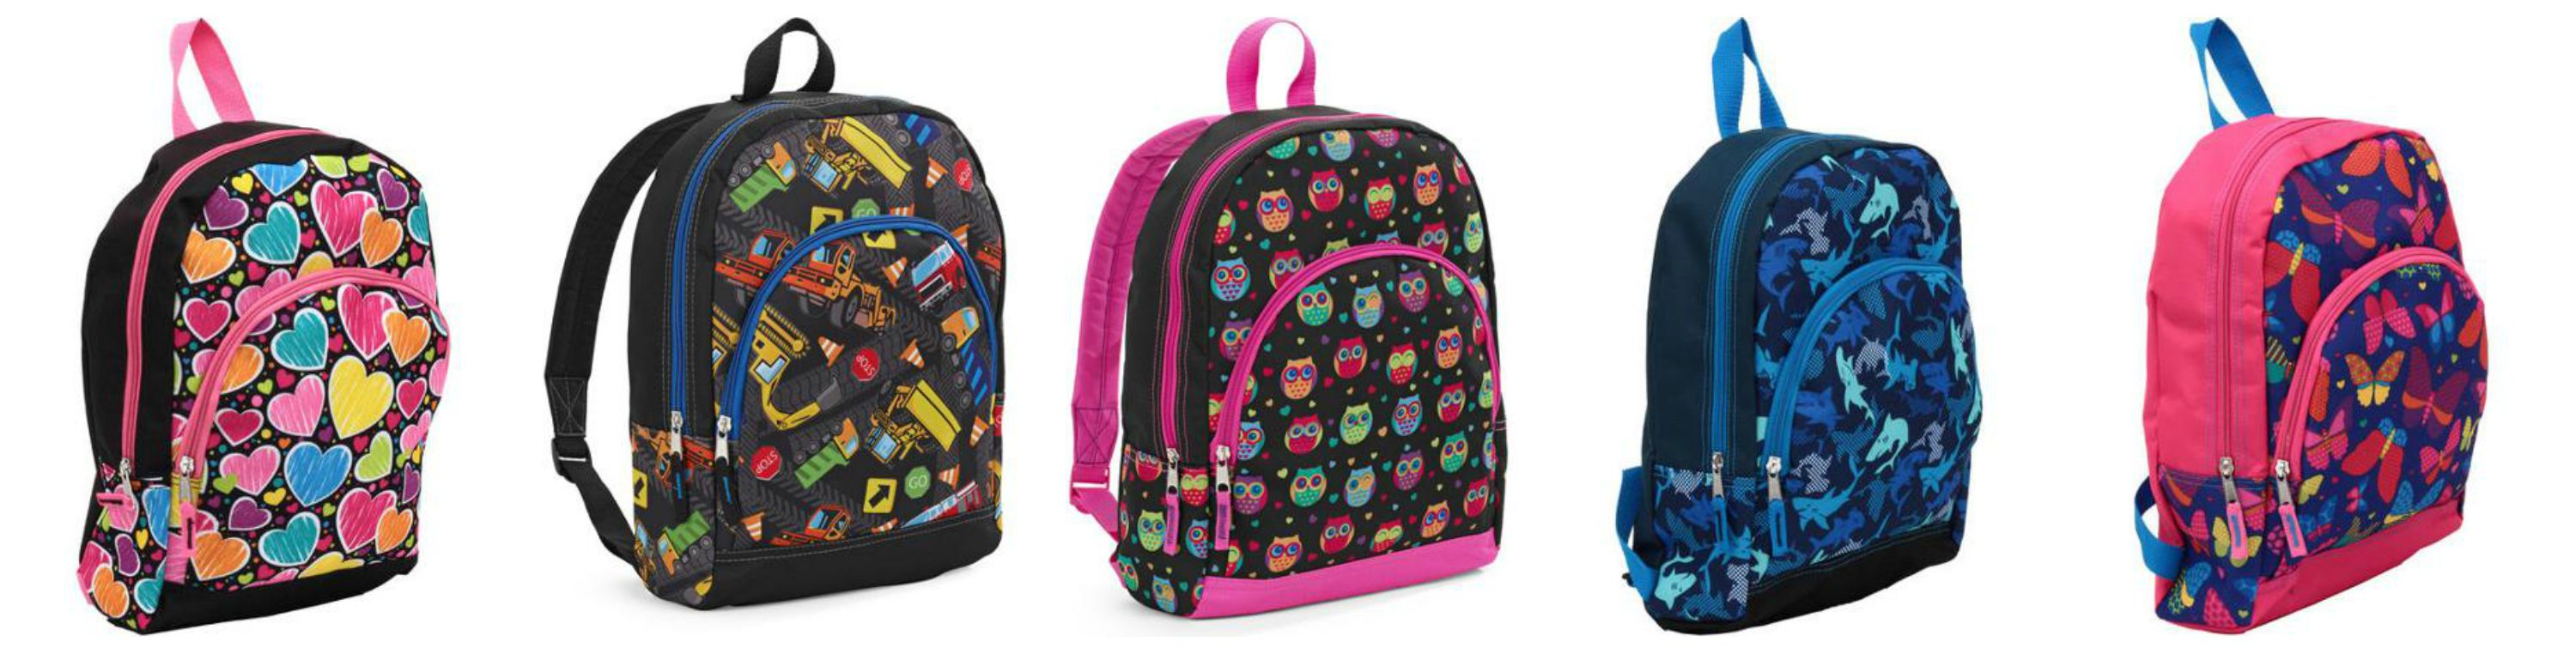 Back To School: Backpacks Only $3.97 |